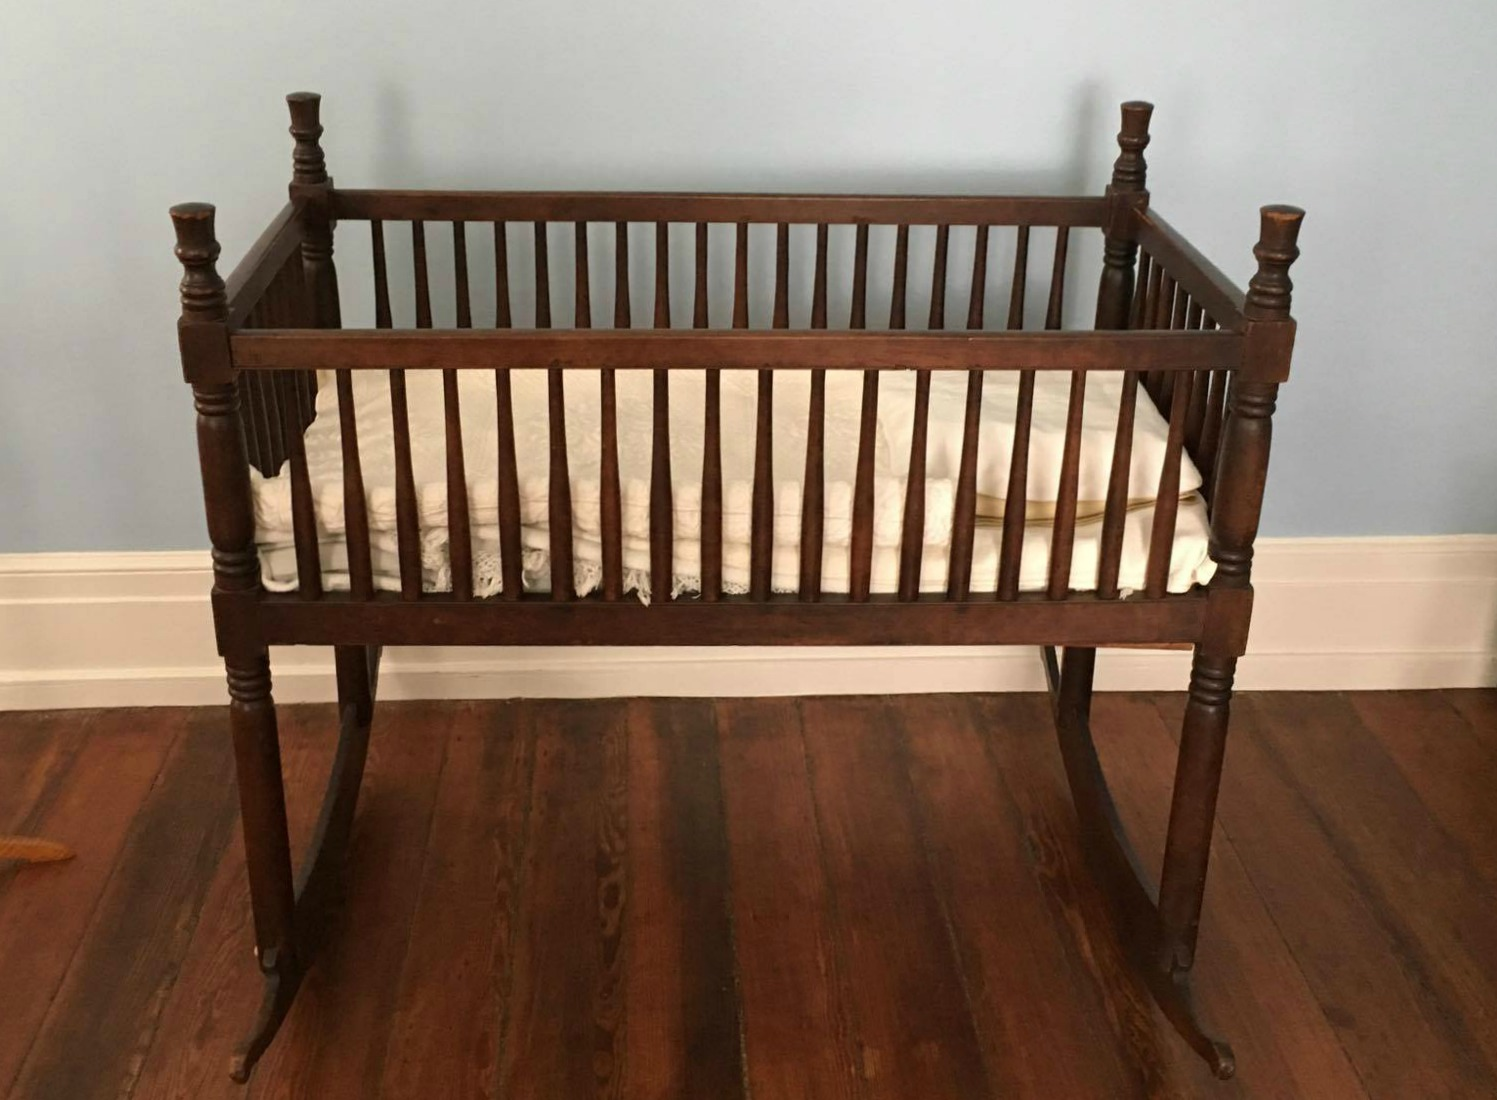 Crib in the boys' room